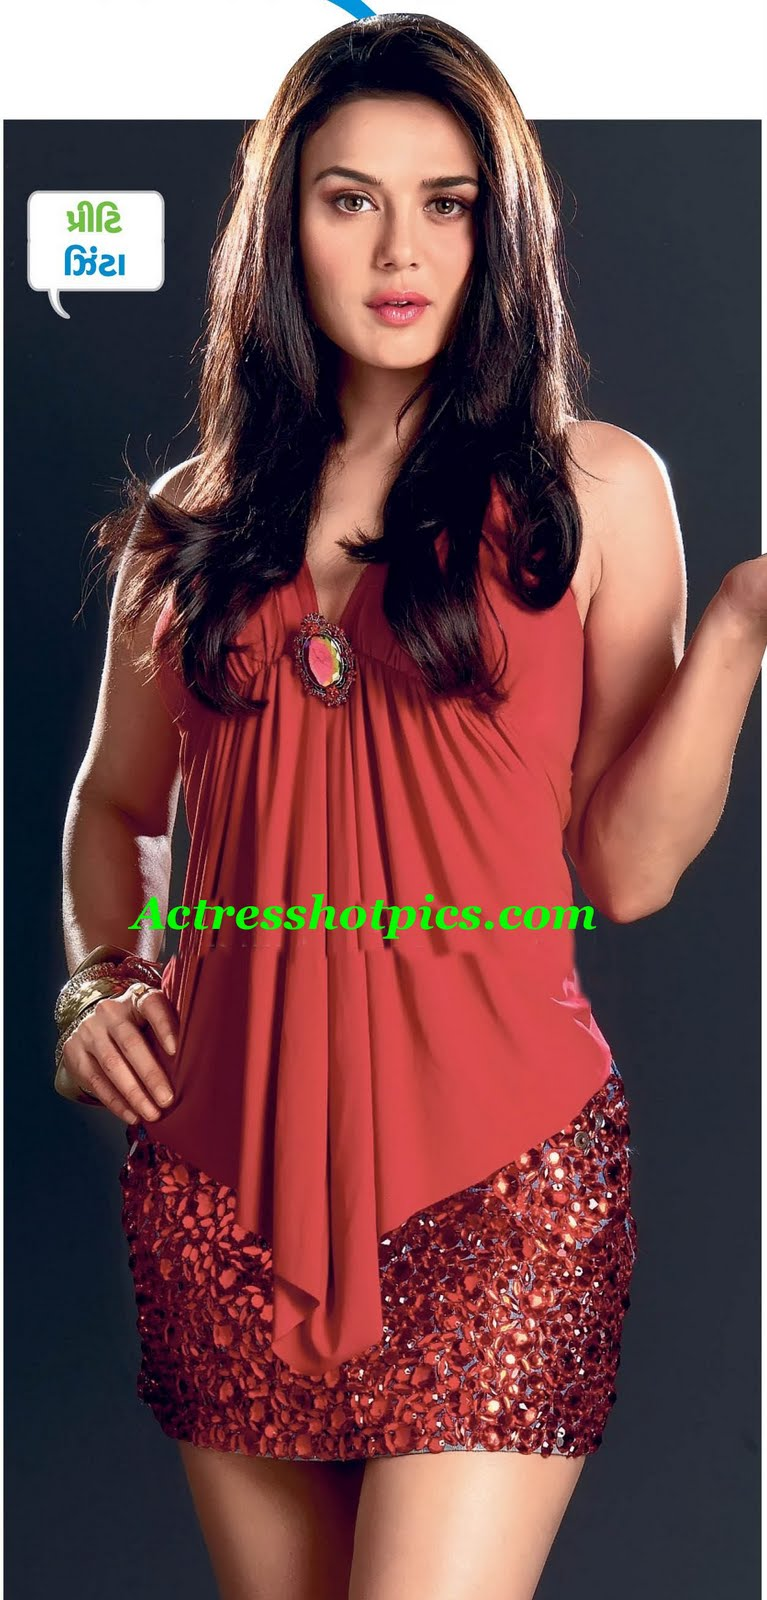 Hot indian actress Preity zinta latest hot photo shoot,preity zinta